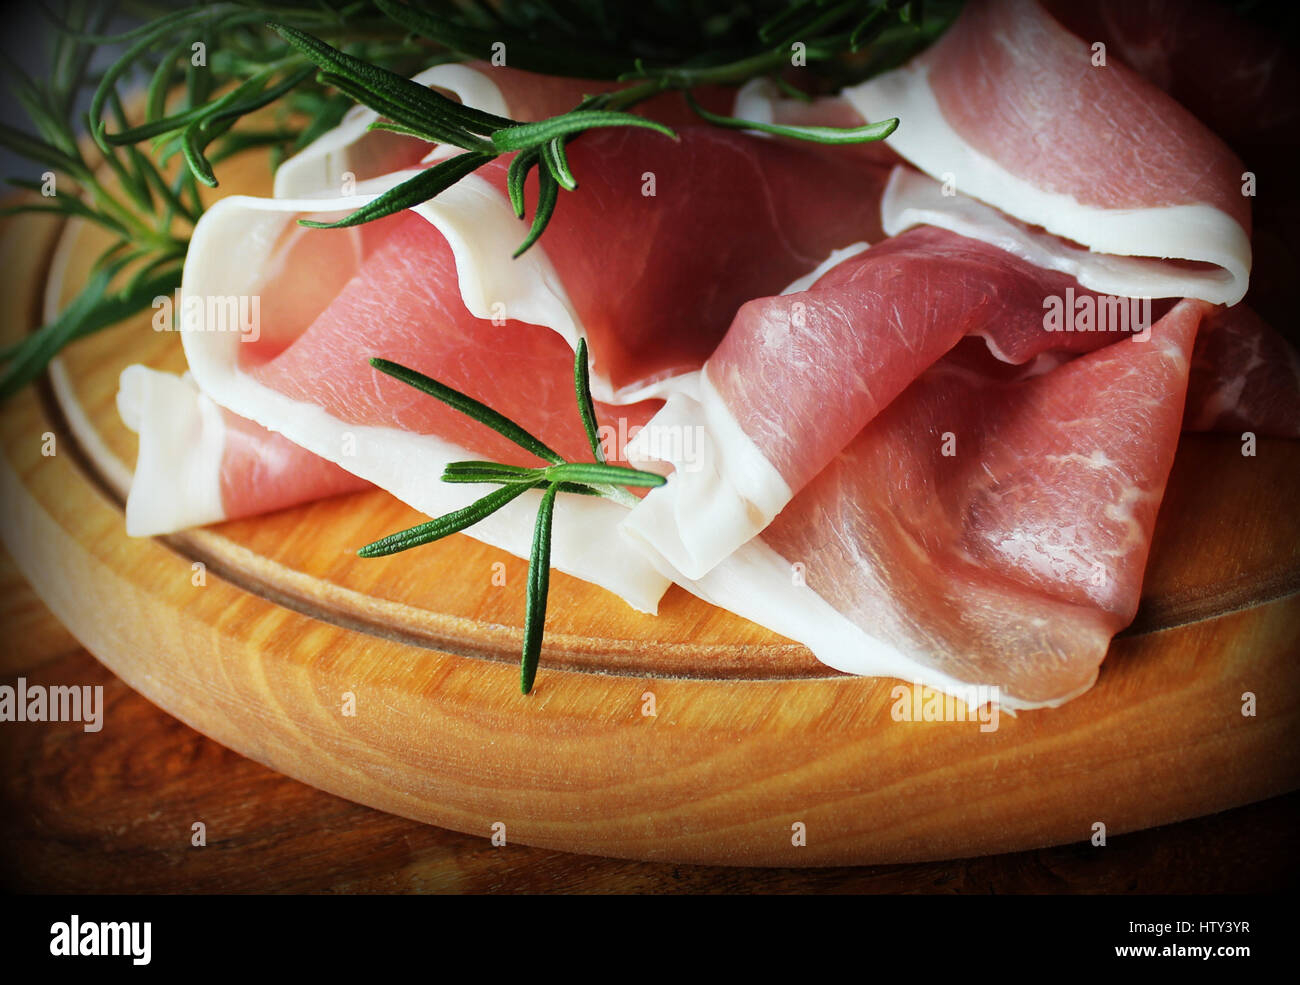 slices of ham on a cutting board - Stock Image